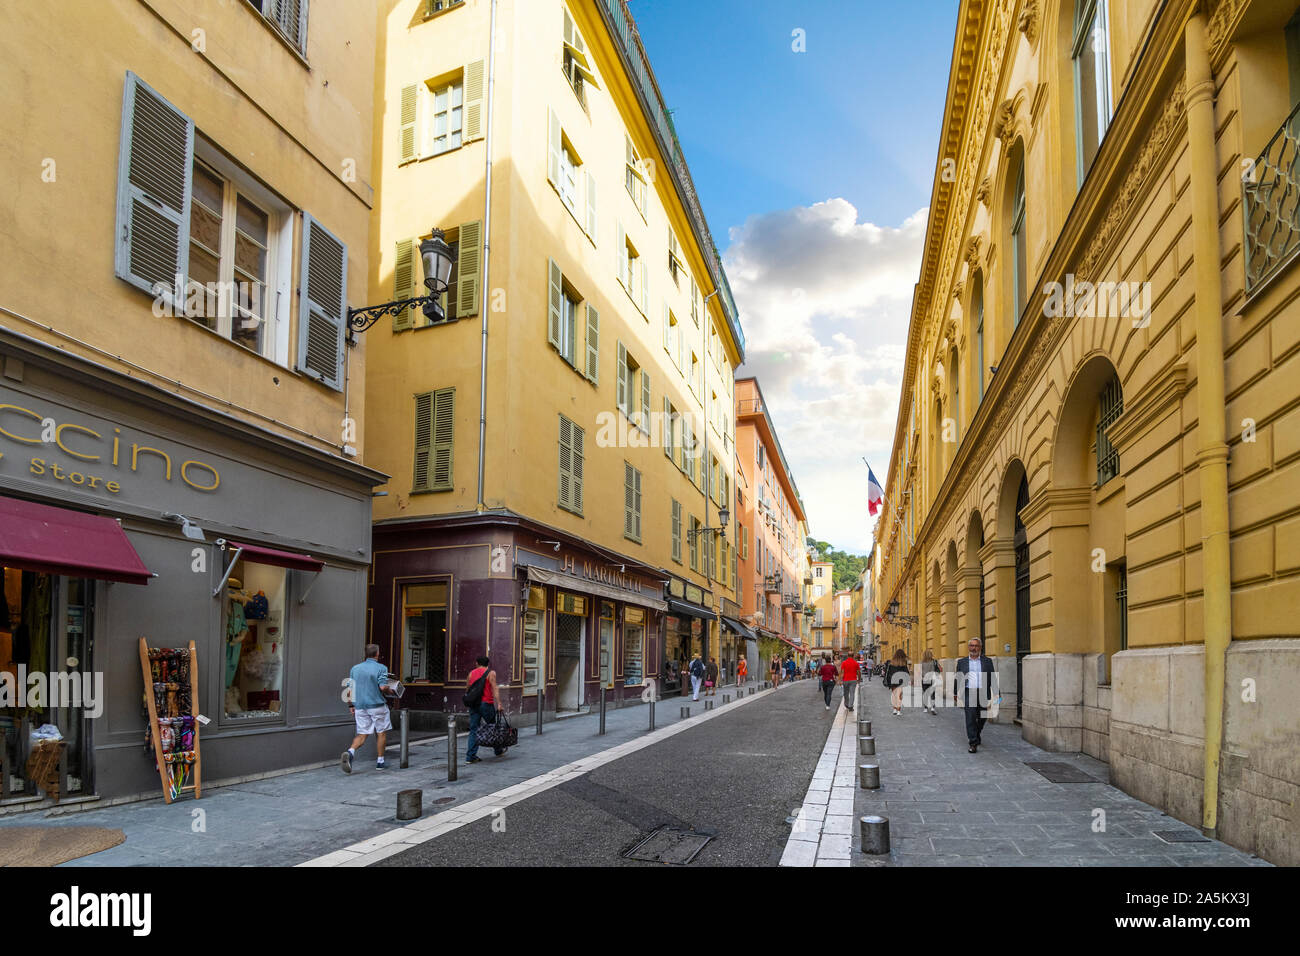 One of the main streets leading to Old Town or Vieux Nice in the historic city of Nice, France, on the French Riviera. Stock Photo